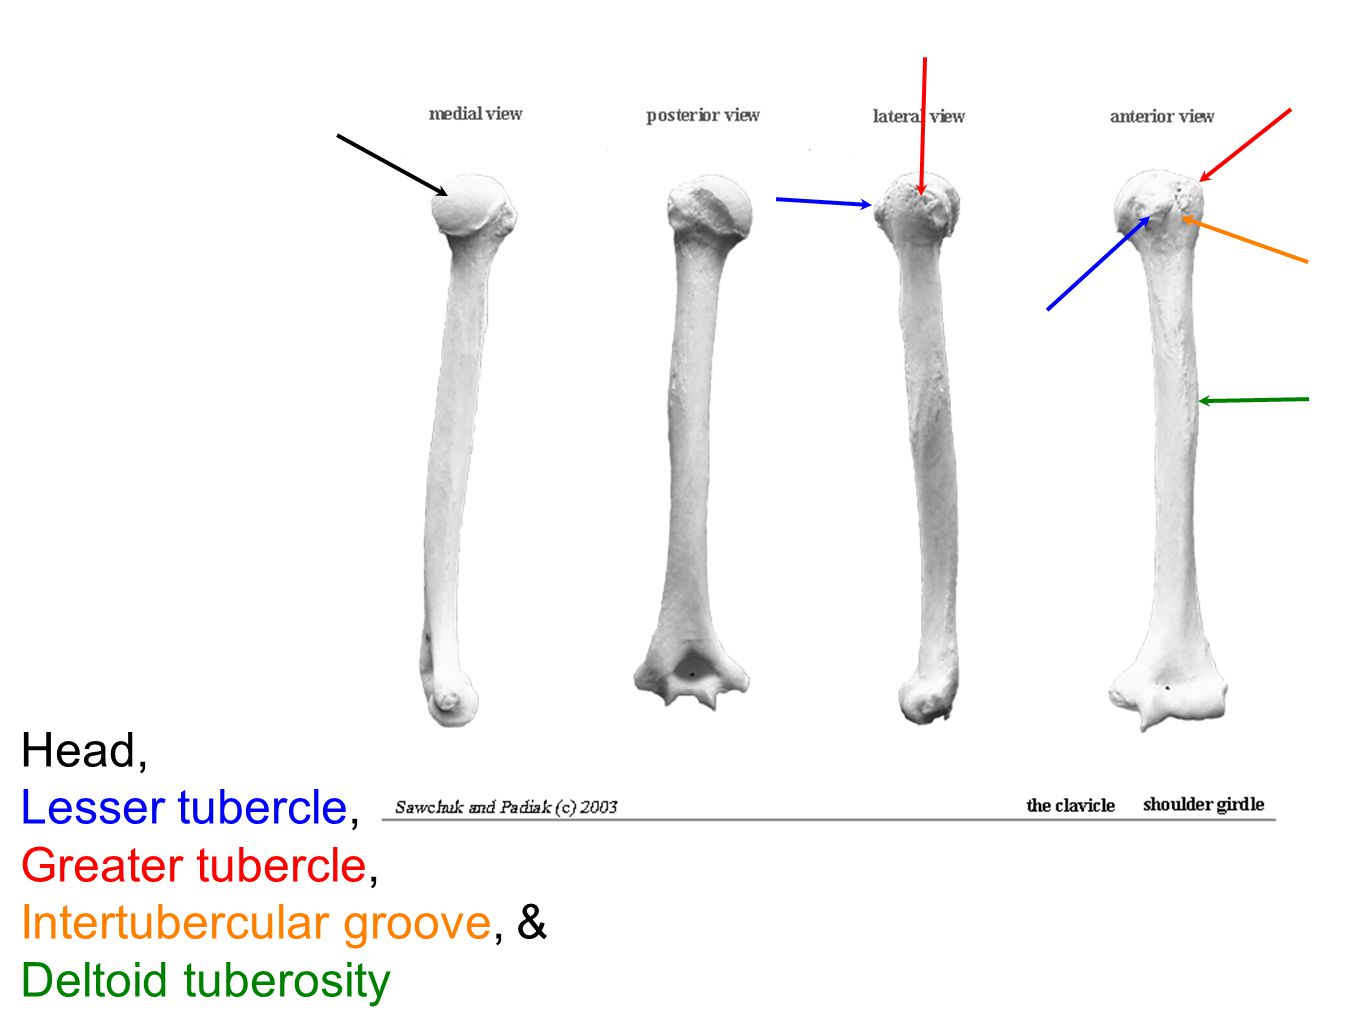 Head, Lesser tubercle, Greater tubercle, Intertubercular groove, & Deltoid tuberosity